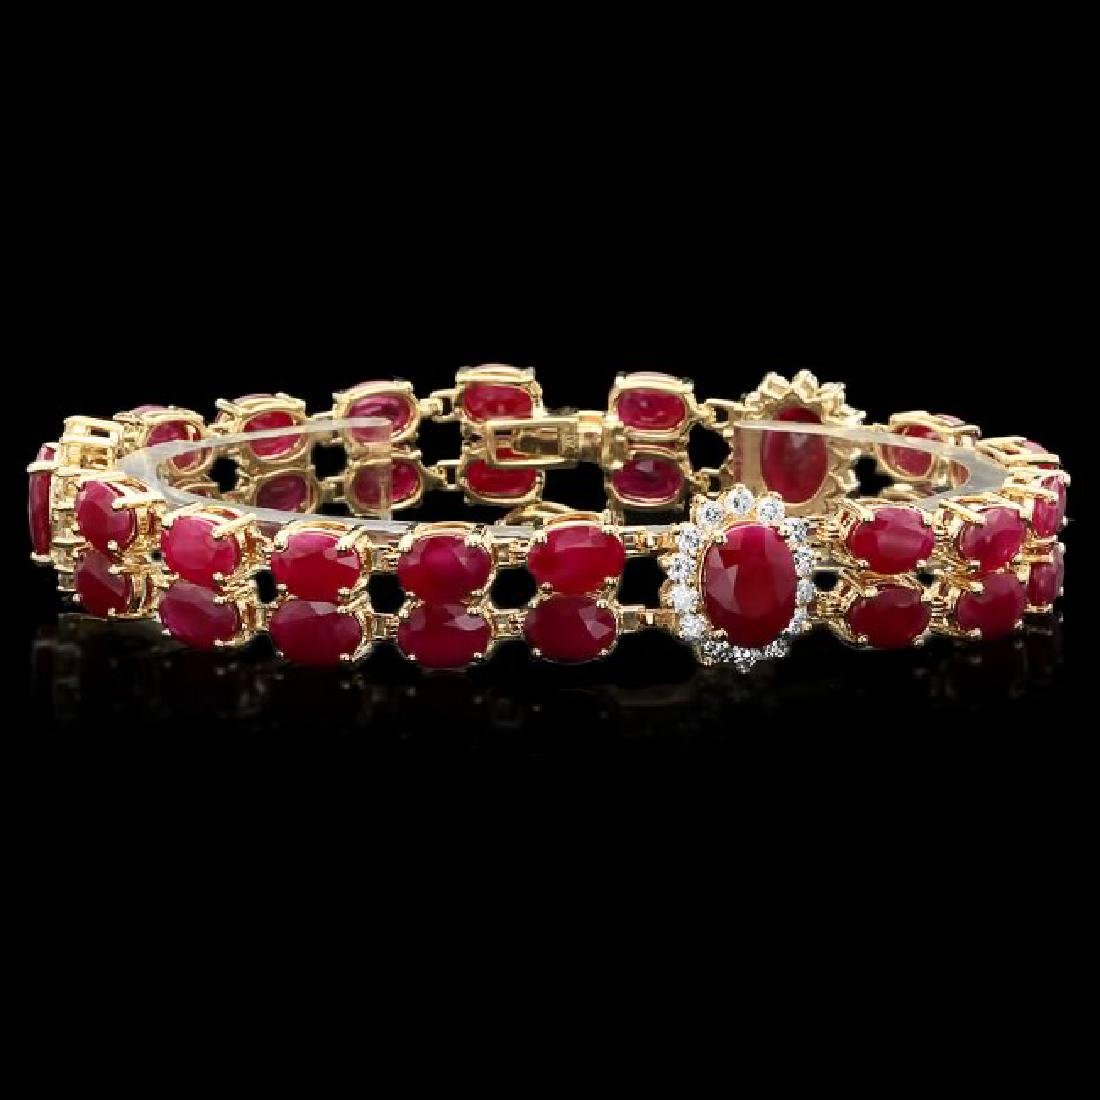 14k Gold 36.0ct Ruby 1.90ct Diamond Bracelet